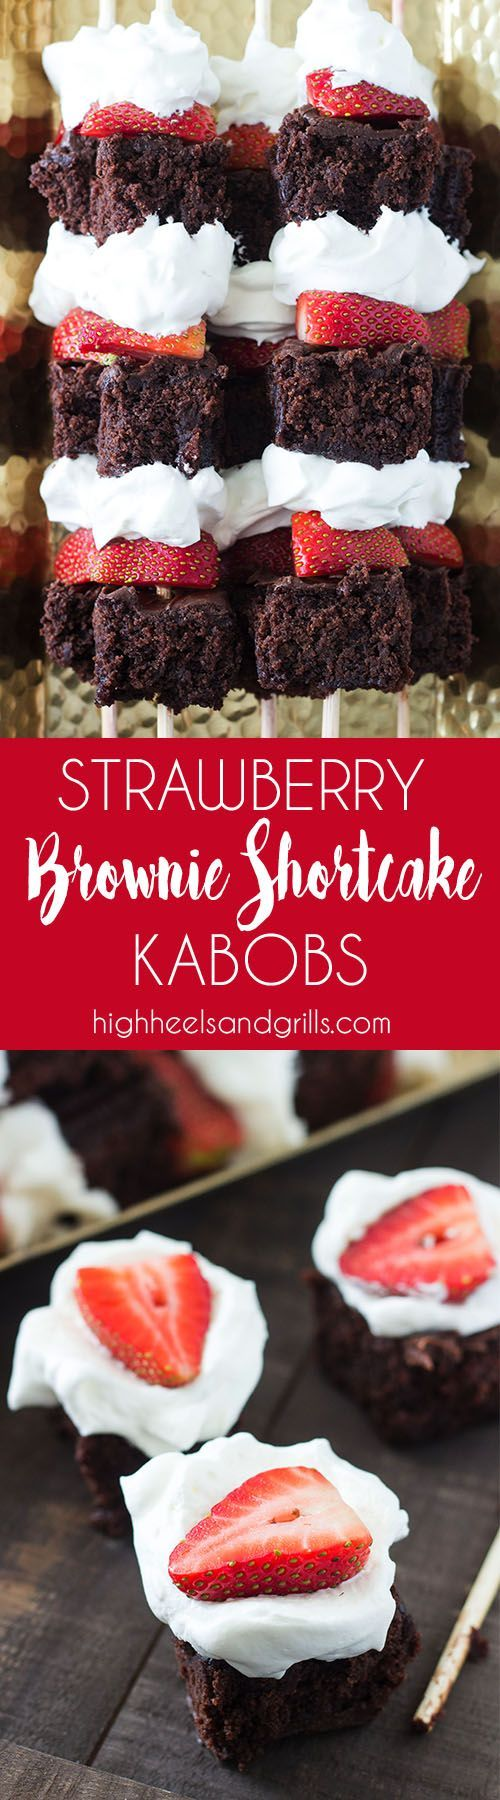 Strawberry Brownie Shortcake Kabobs. They're easy to make and taste delicious! Source: High Heels and Grills via @heelsngrills